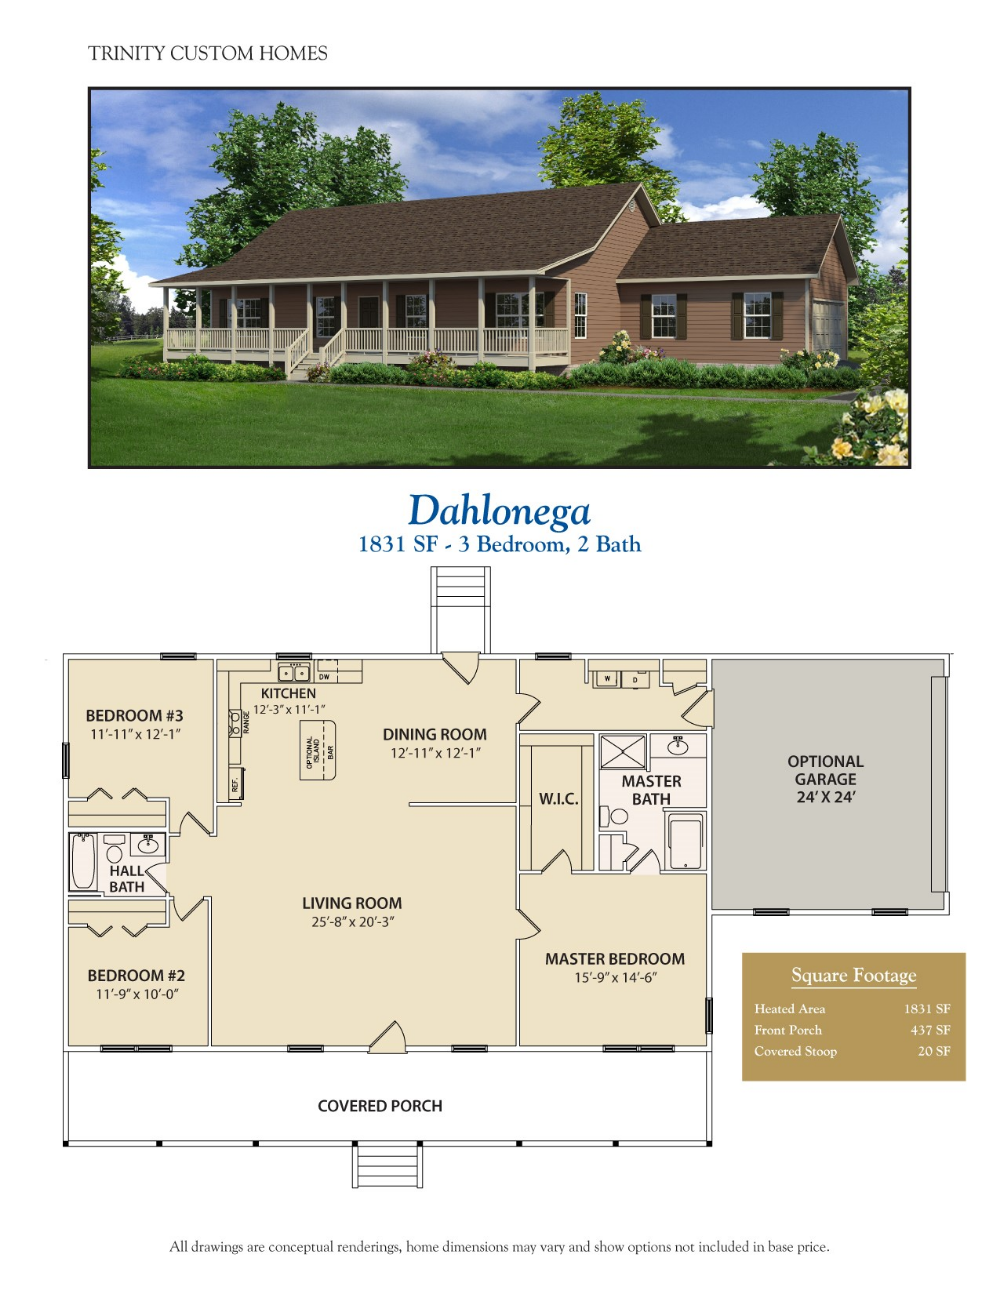 Pin By Chelsea Cooley On House Plans Barn House Plans Pole Barn House Plans House Blueprints